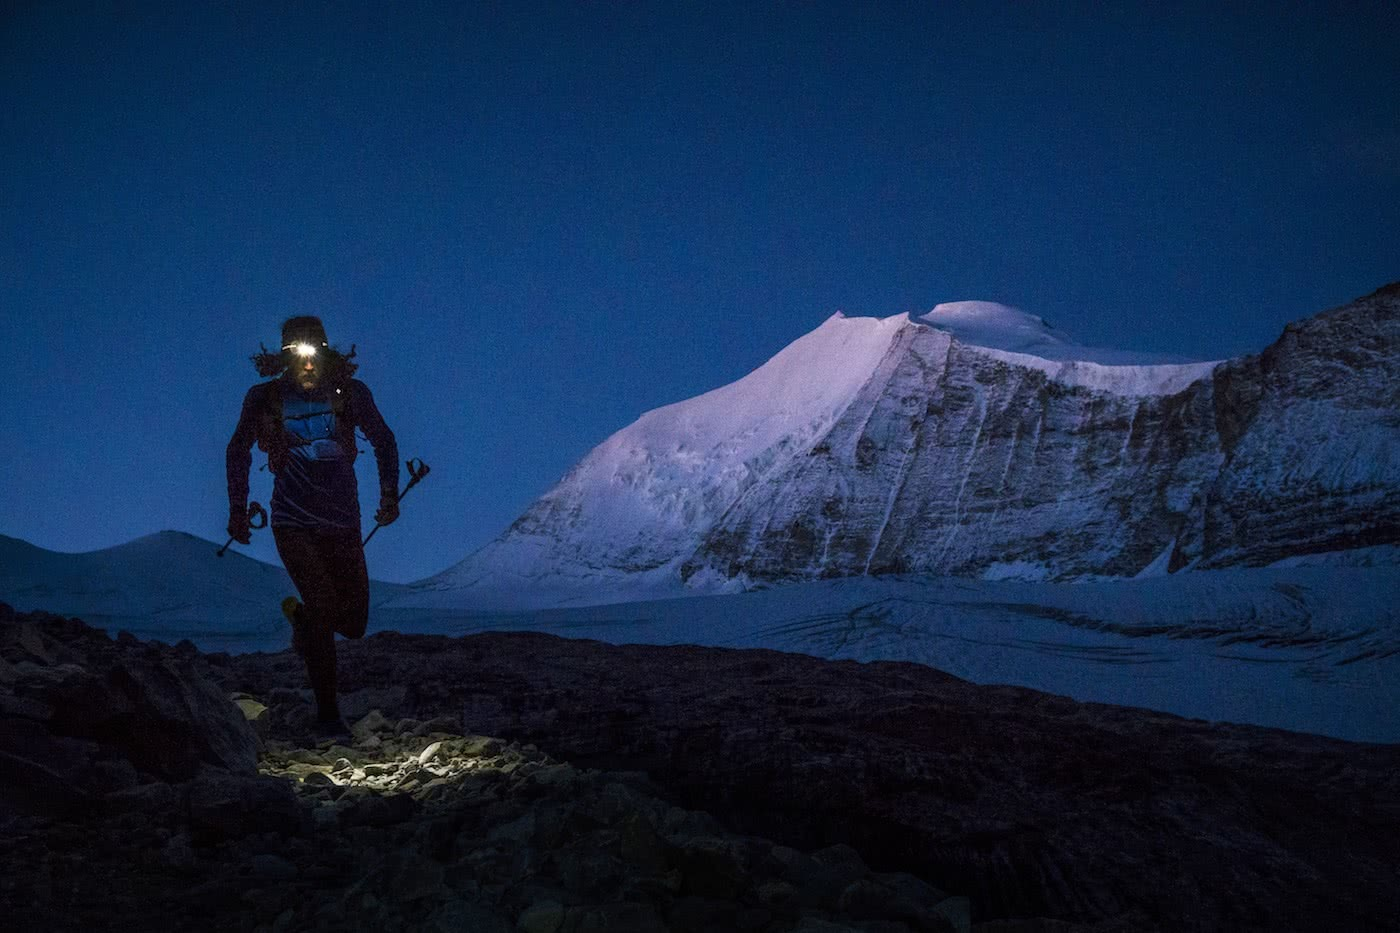 Runner Guy // An Interview With Trail Runner Joe Grant, Photo by Dan Patitucci, night running, head torch, snow, mountain, dark